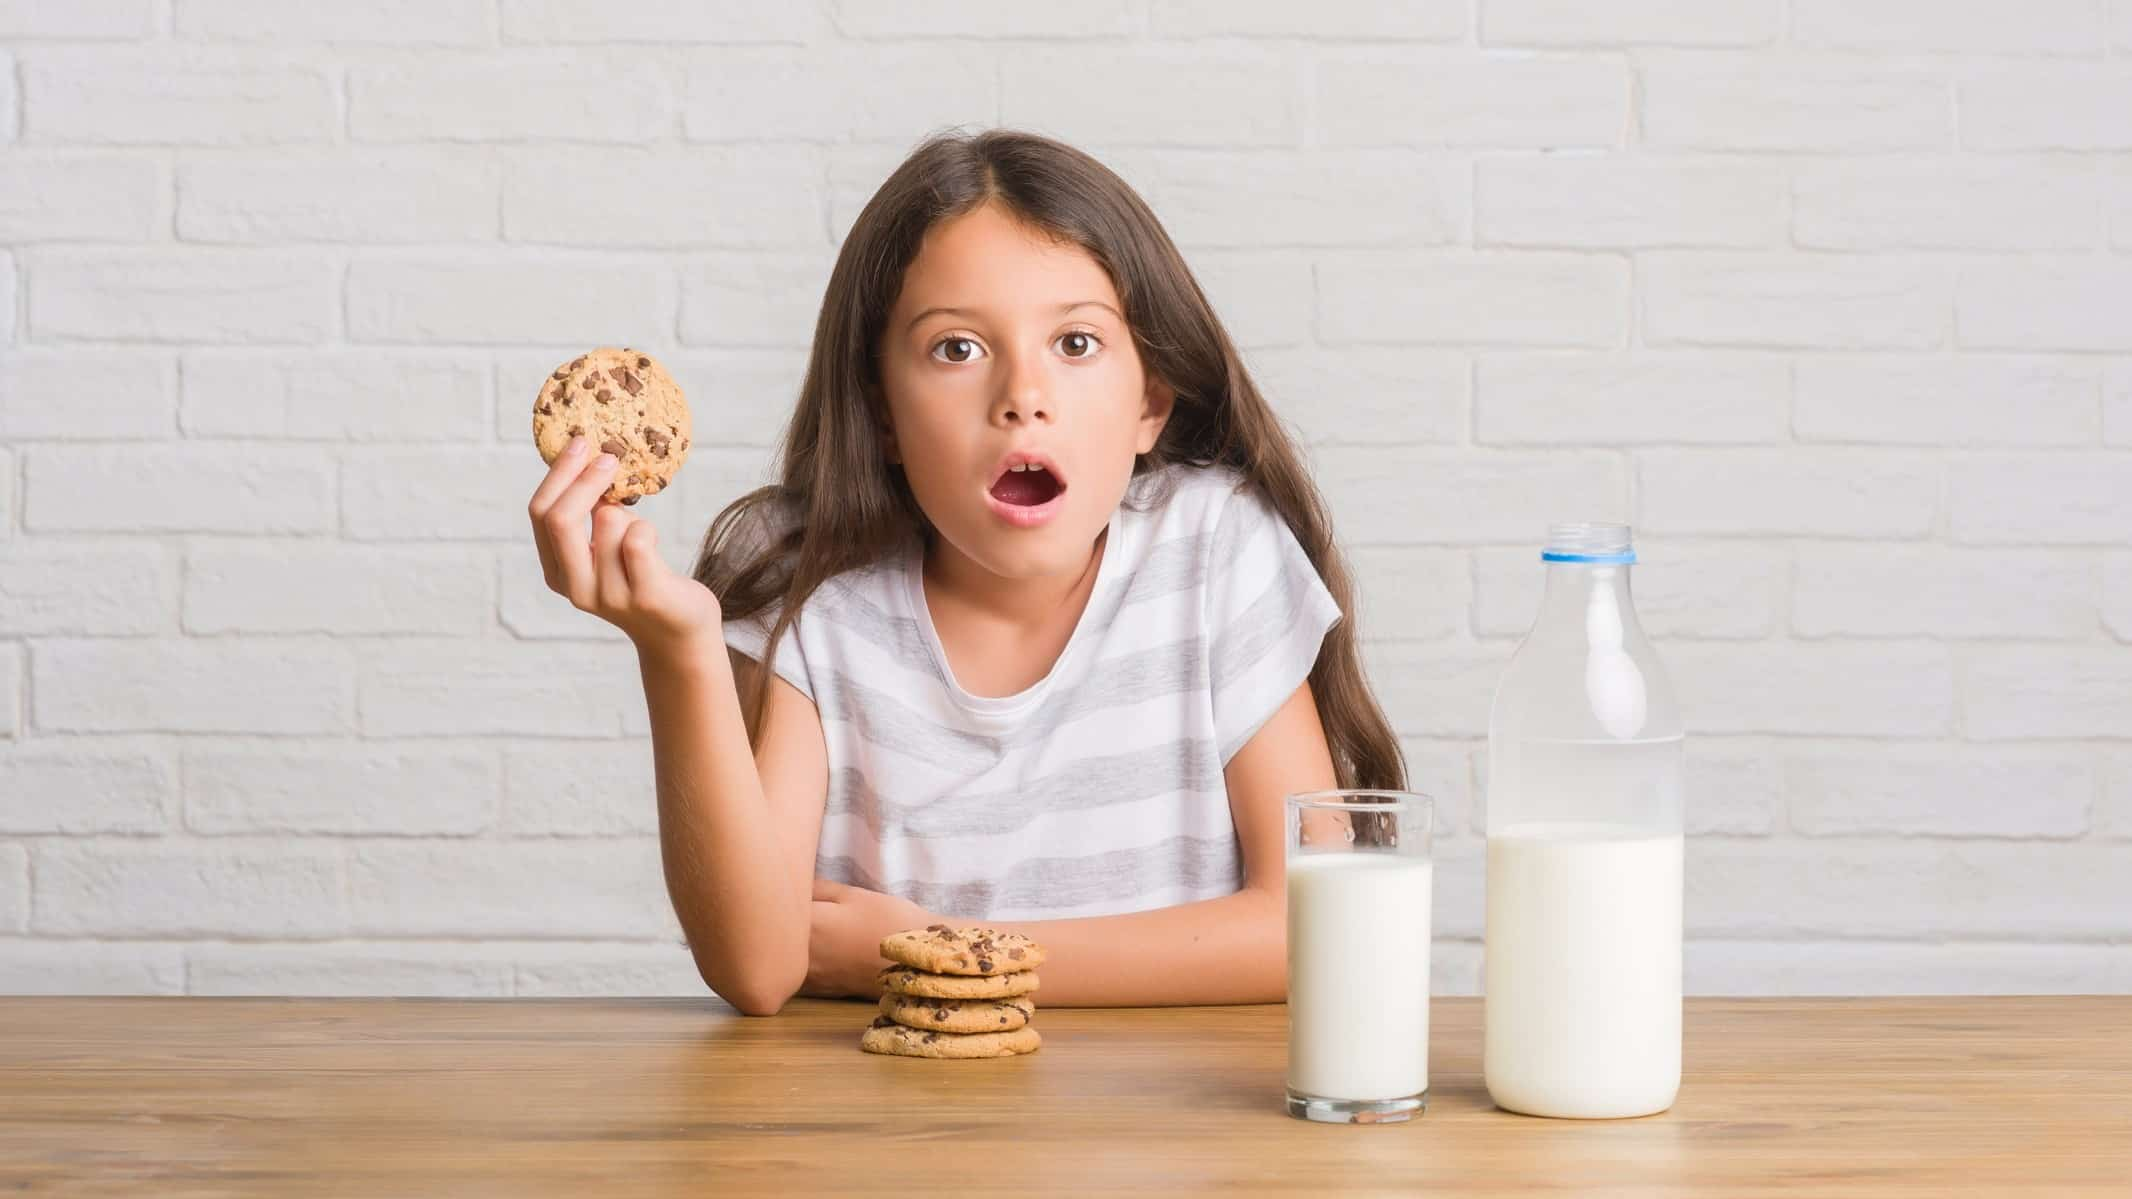 falling share price represented by wide eyed girl next to glass of milk